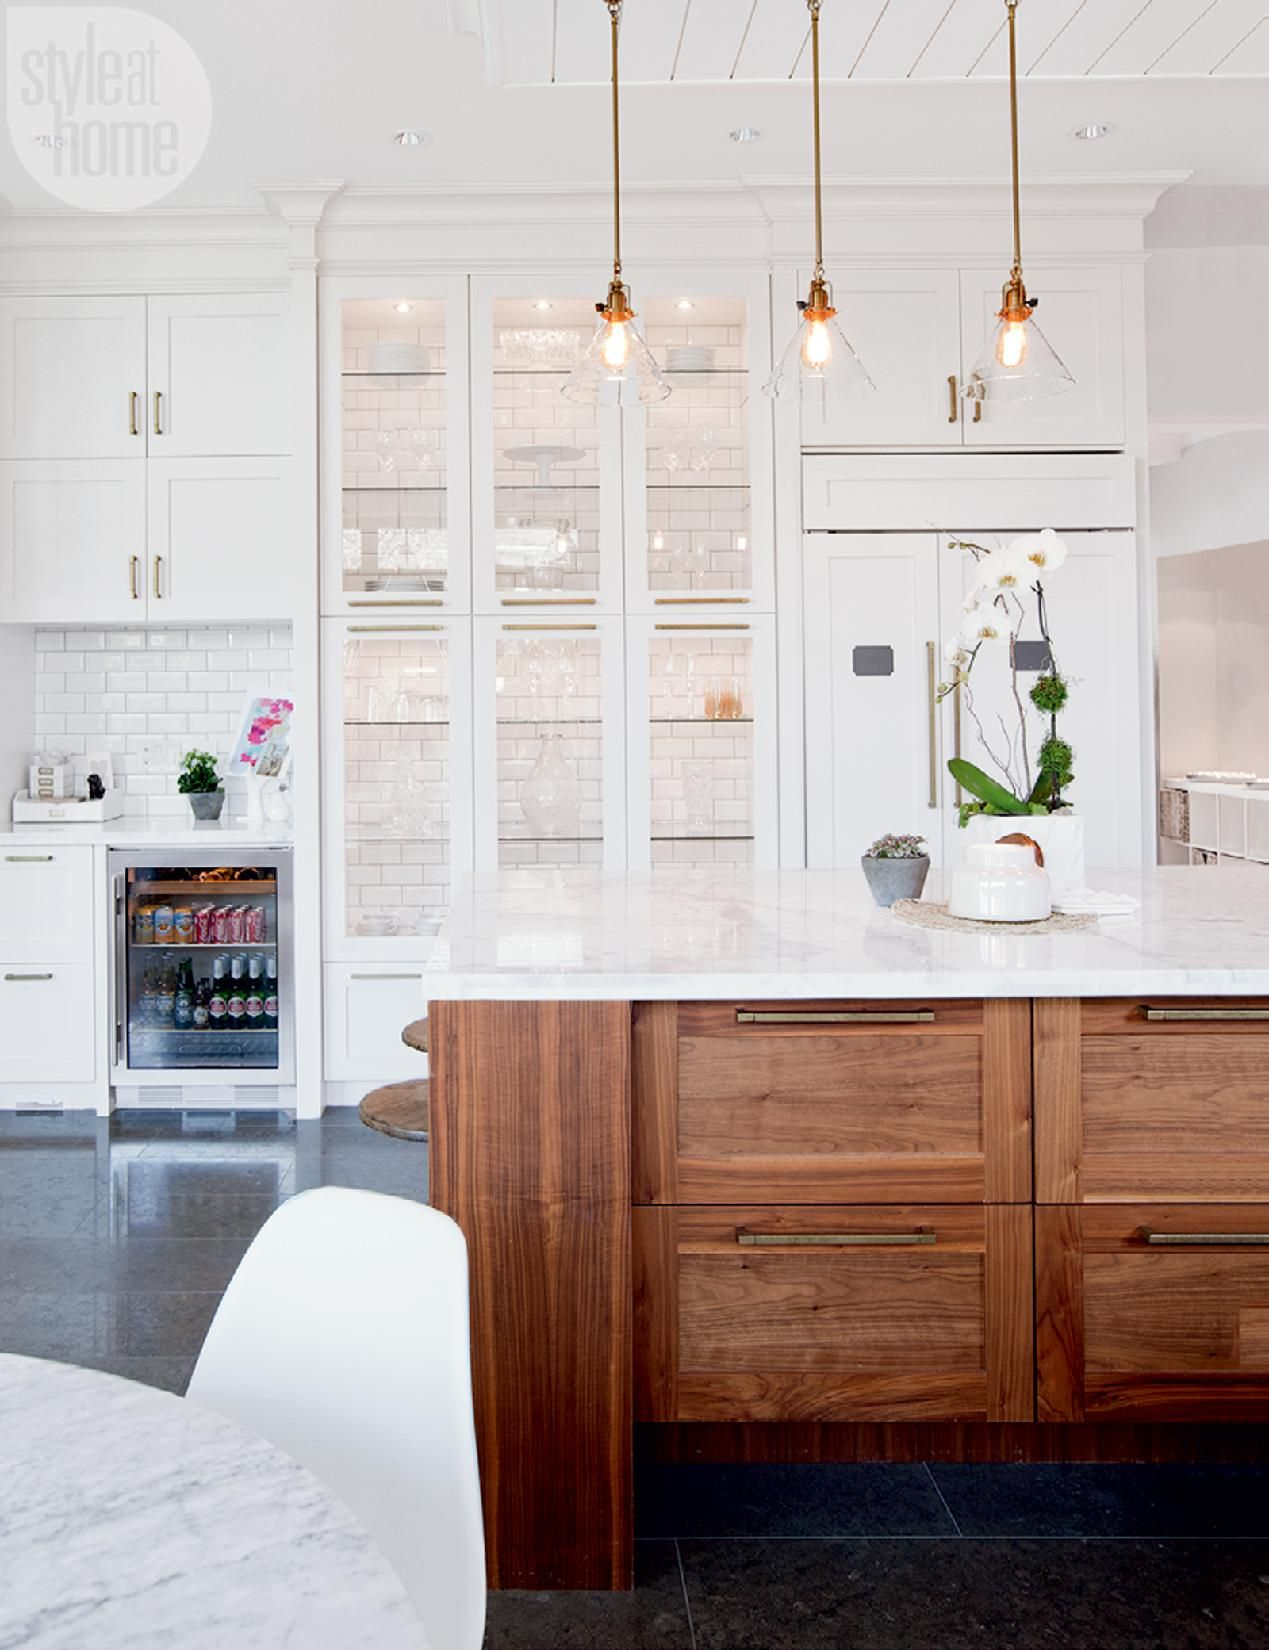 Interiors | White display cabinet, Display cabinets and House tours